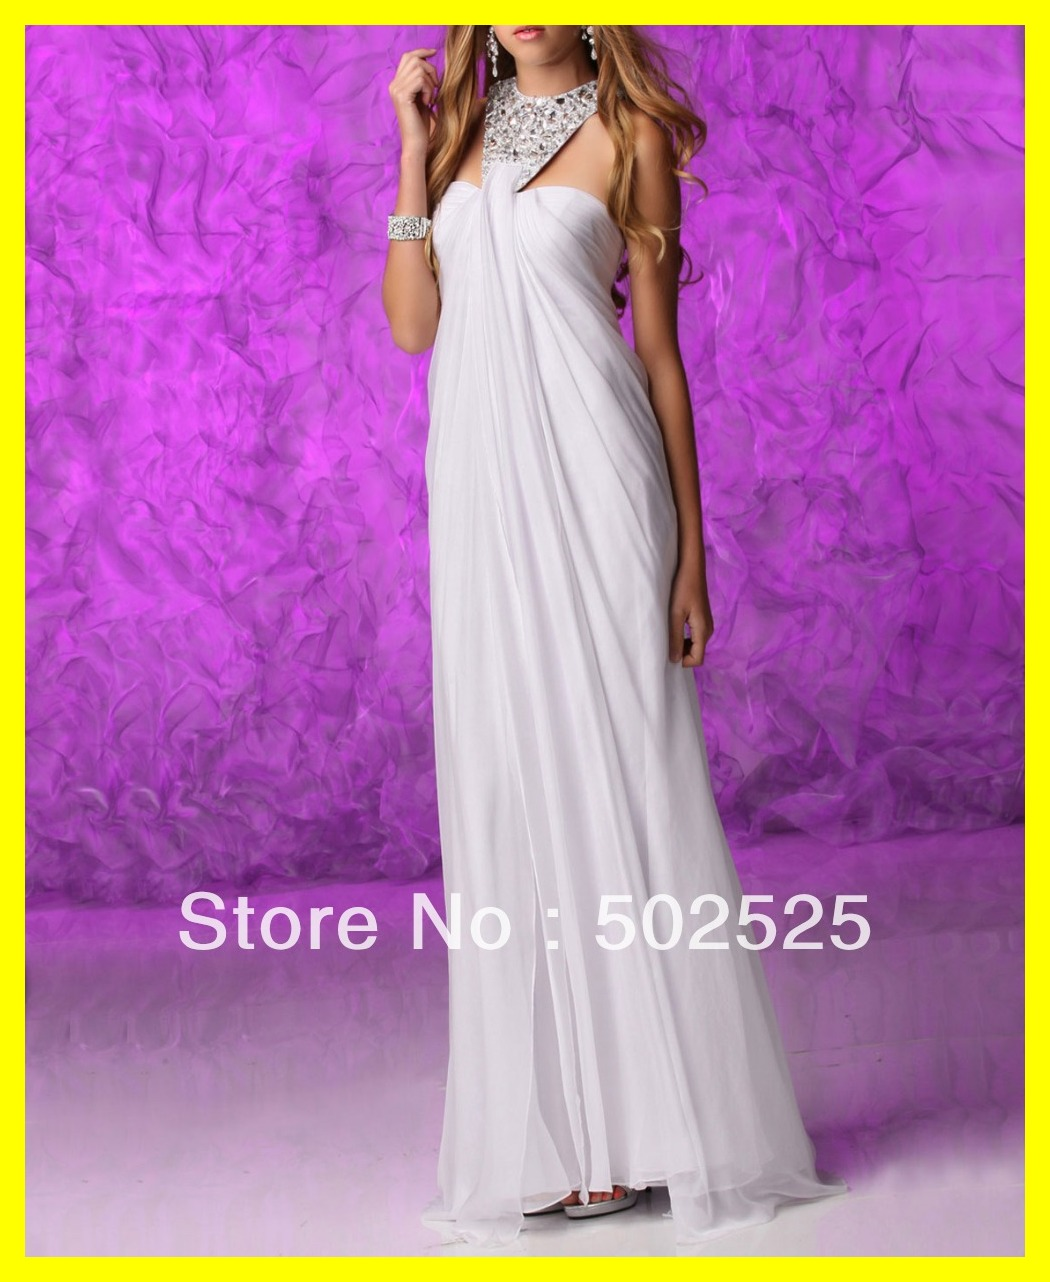 Ladies Evening Dress Shops Glasgow Holiday Dresses